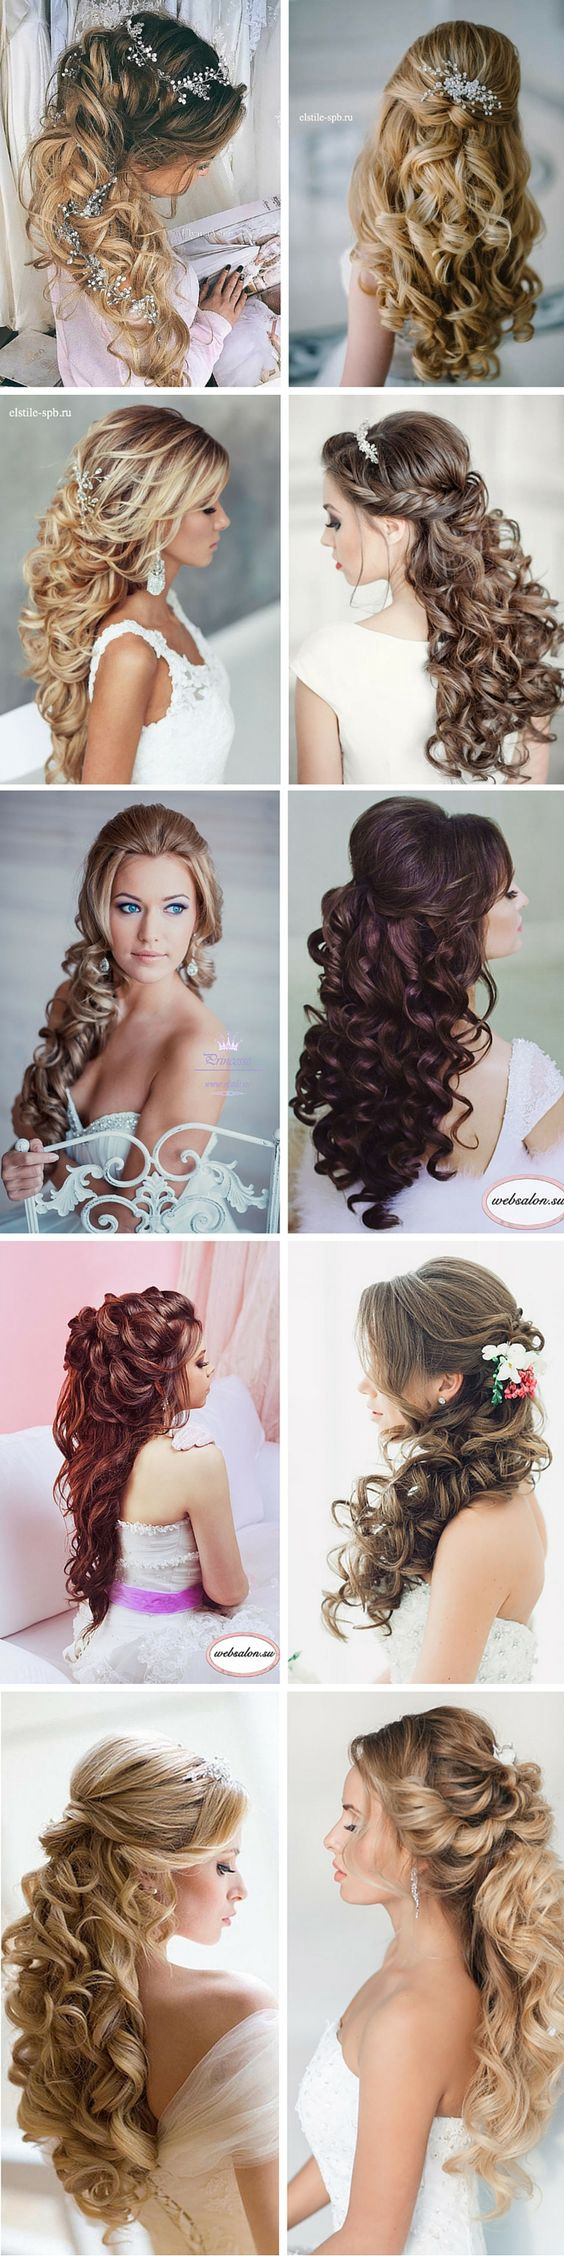 Famous Half Up Curls Hairstyles For Wedding Inside 100+ Romantic Long Wedding Hairstyles 2019 – Curls, Half Up, Updos (View 5 of 20)